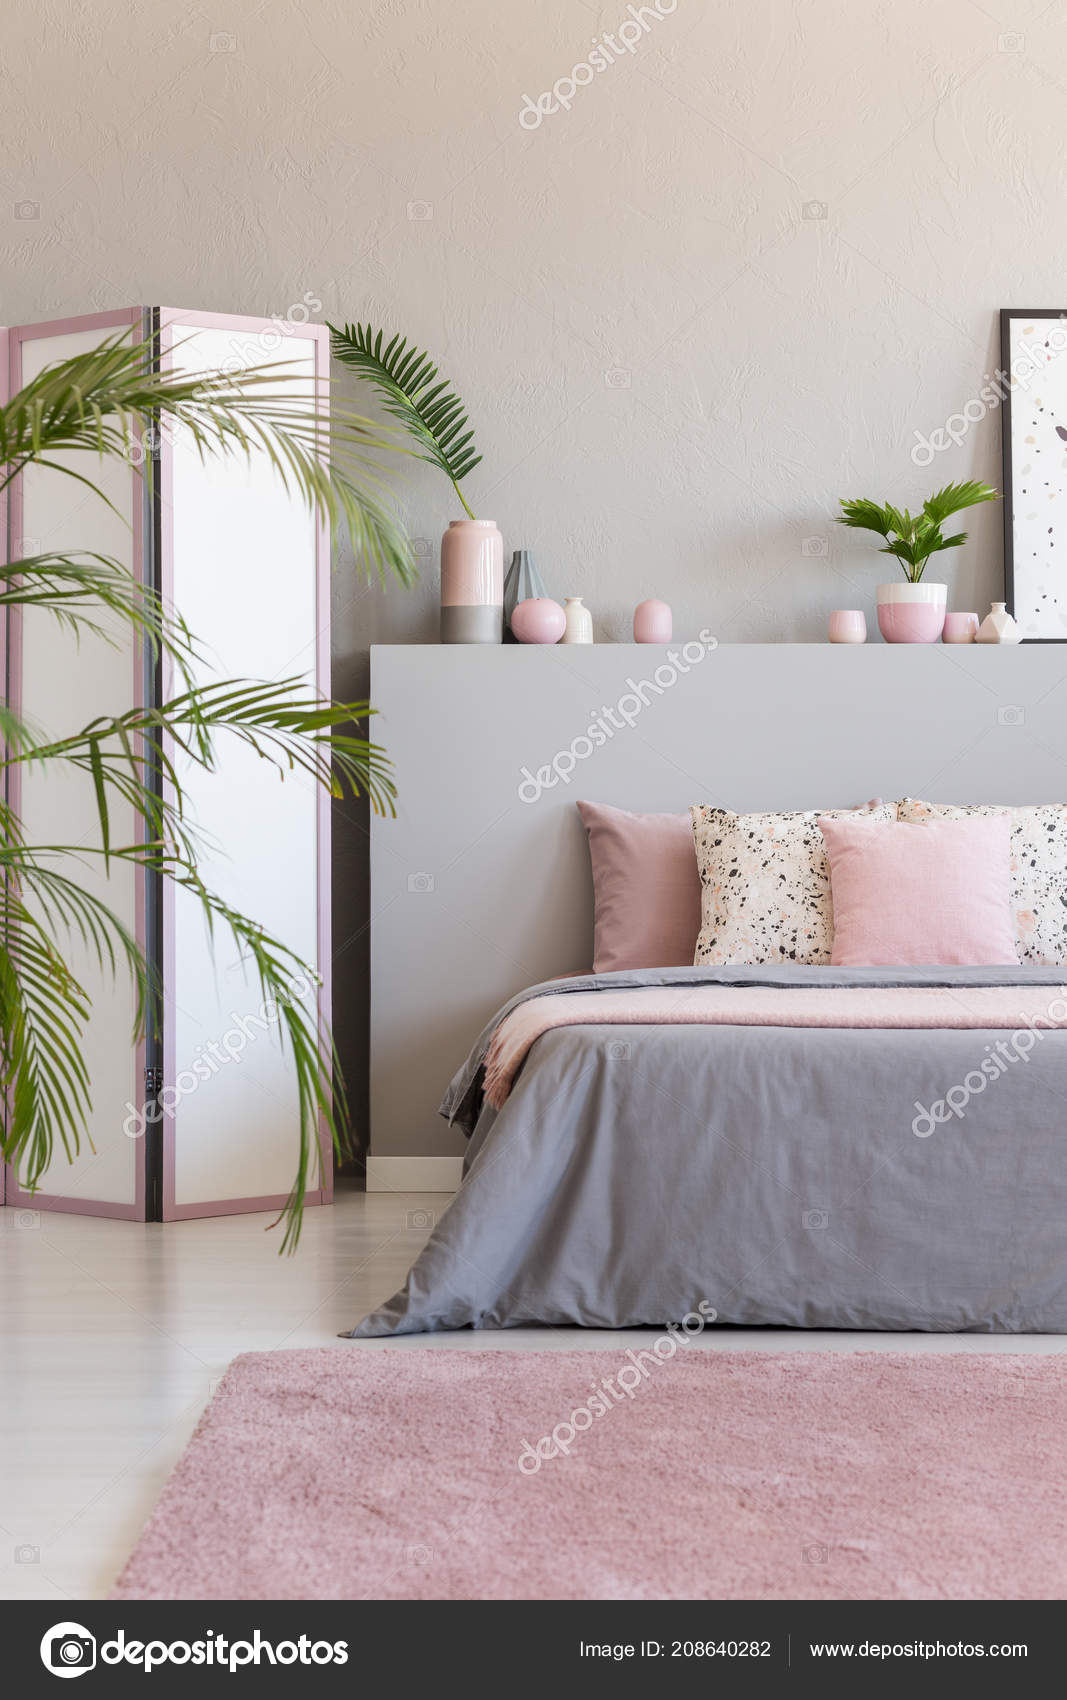 Pink carpet in front of grey bed with cushions in bedroom interior with screen and plants real photo photo by photographee eu